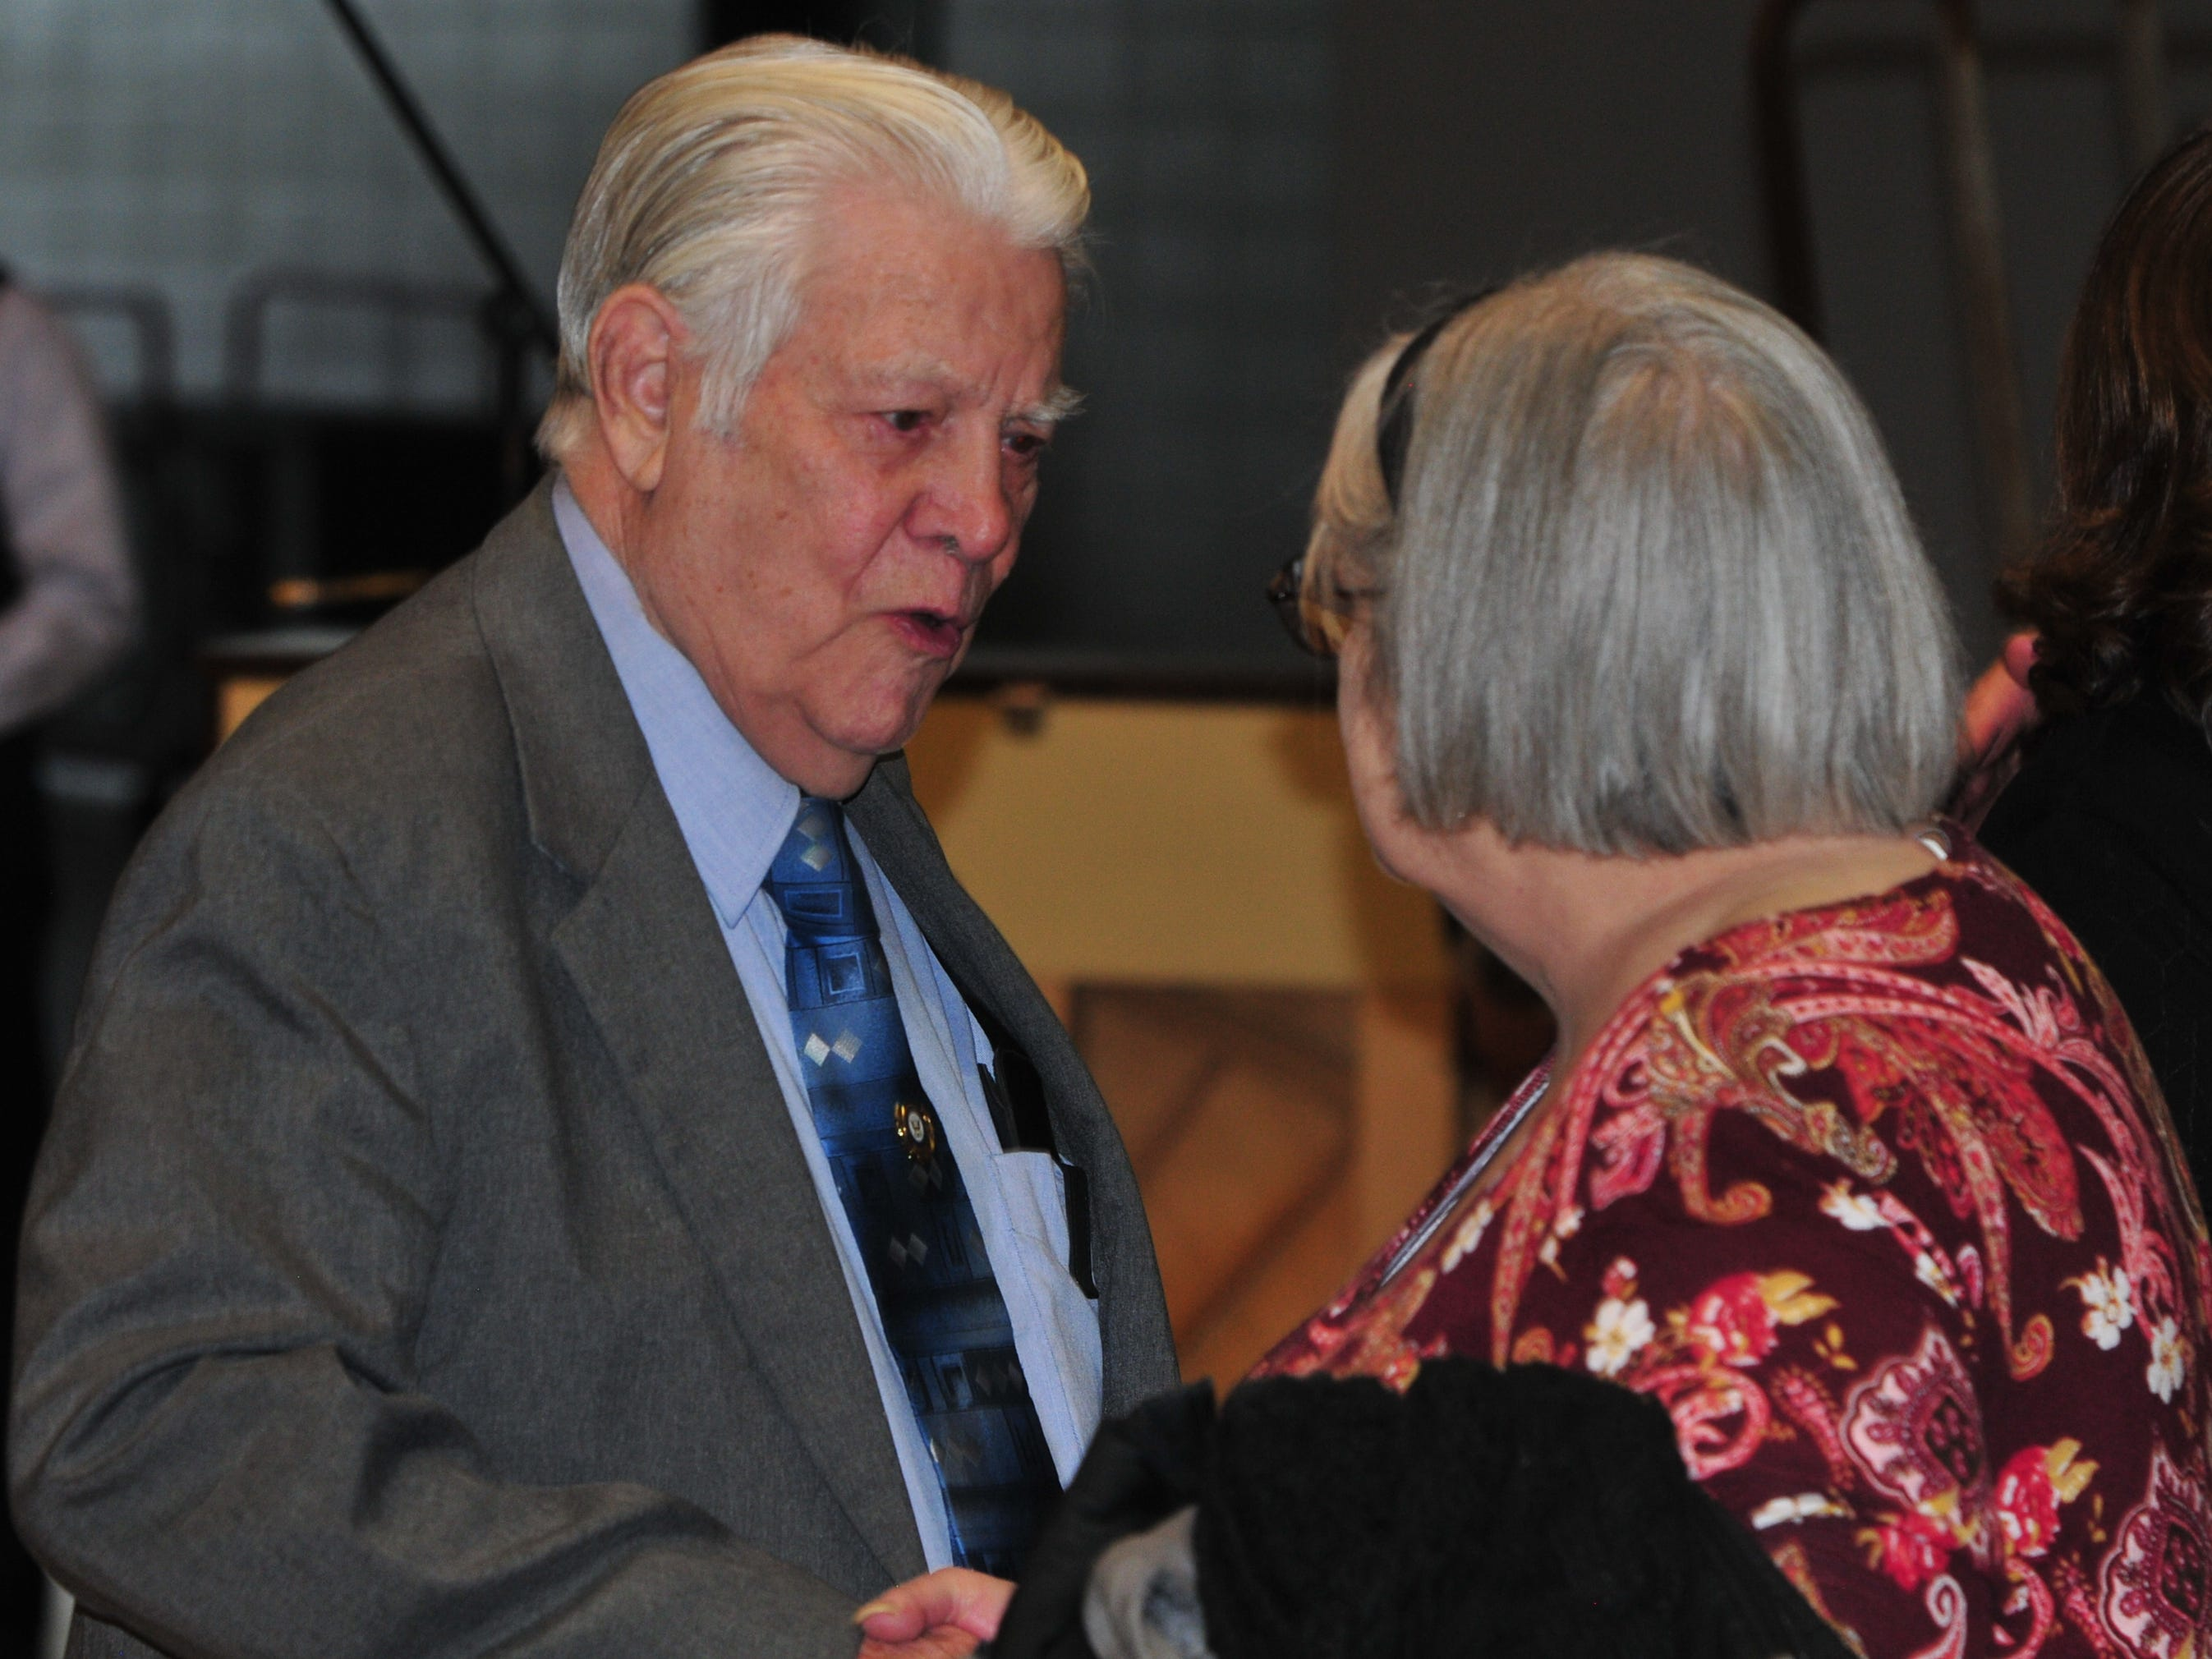 Bill Grimes receives congratulations after he received a diploma during Friday's Veterans Day Program at Richmond High School.